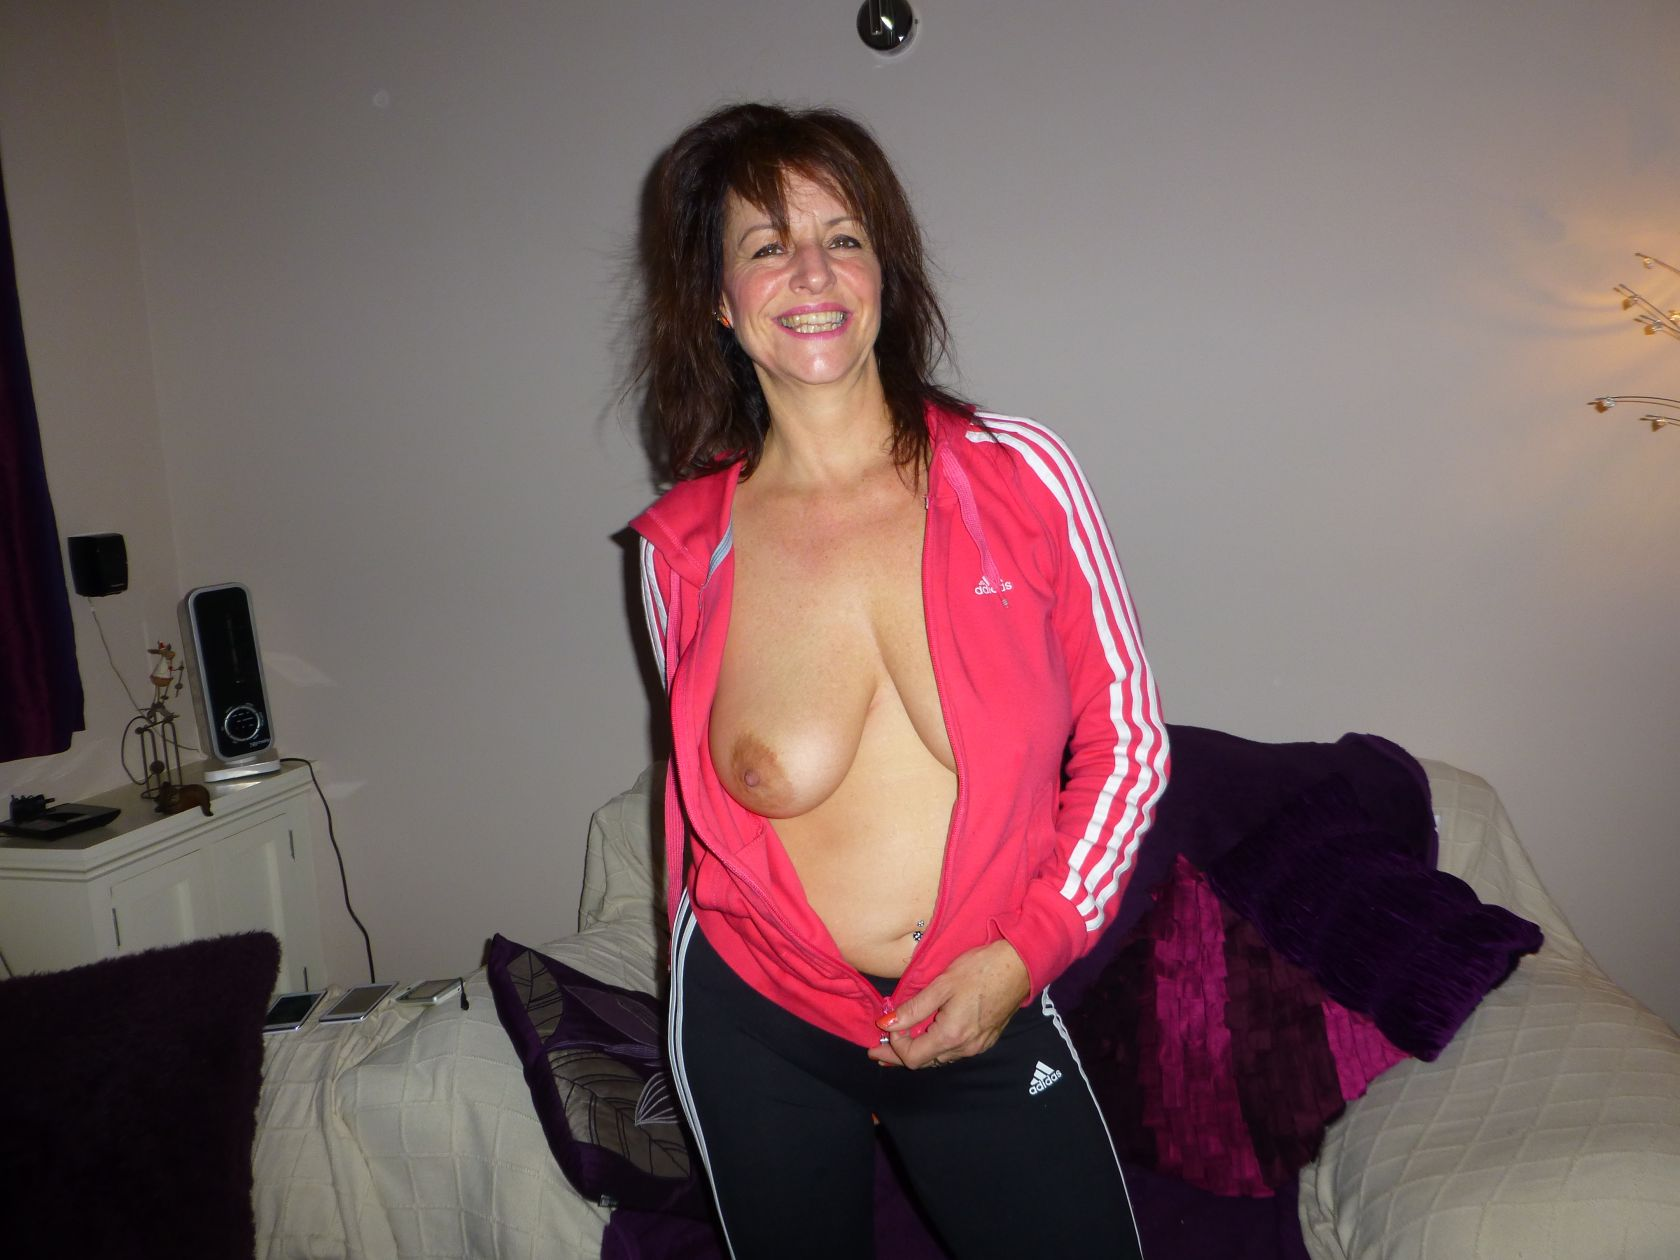 One tit out from smiley woman real nudity milf pics mature howife boobs flash